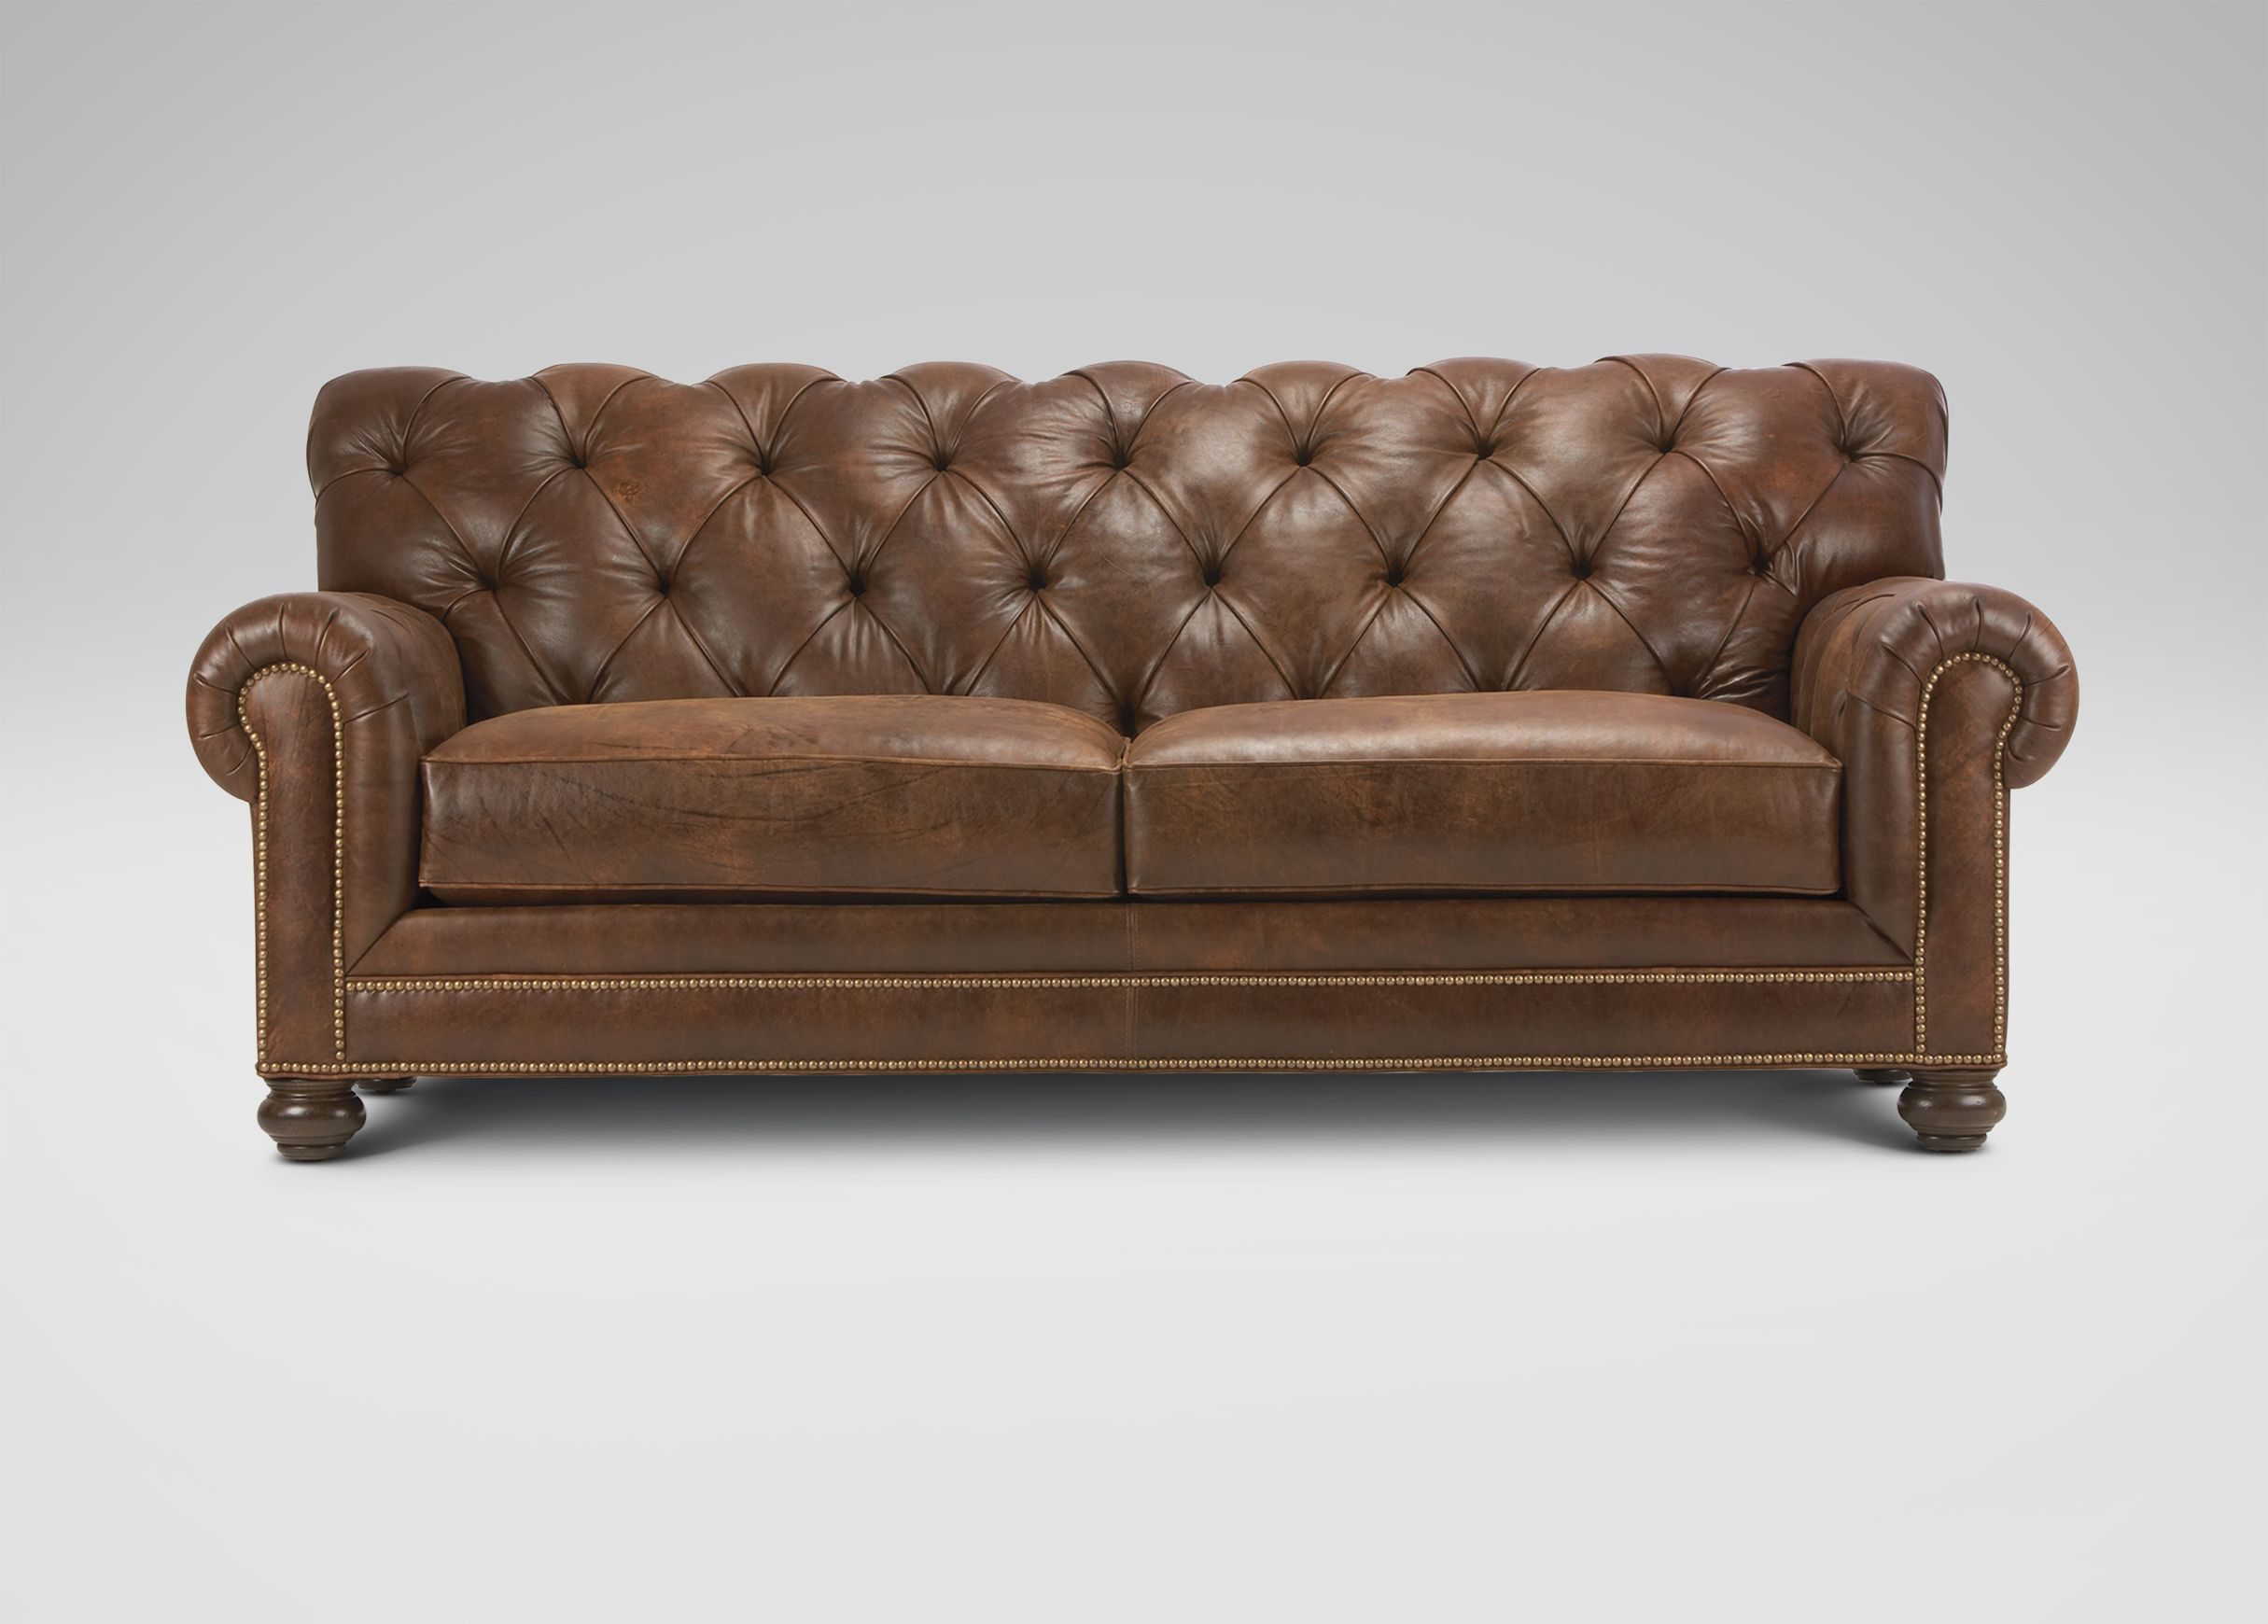 Chadwick Leather Sofa Ethan Allen Tufted Leather Sofa Ethan